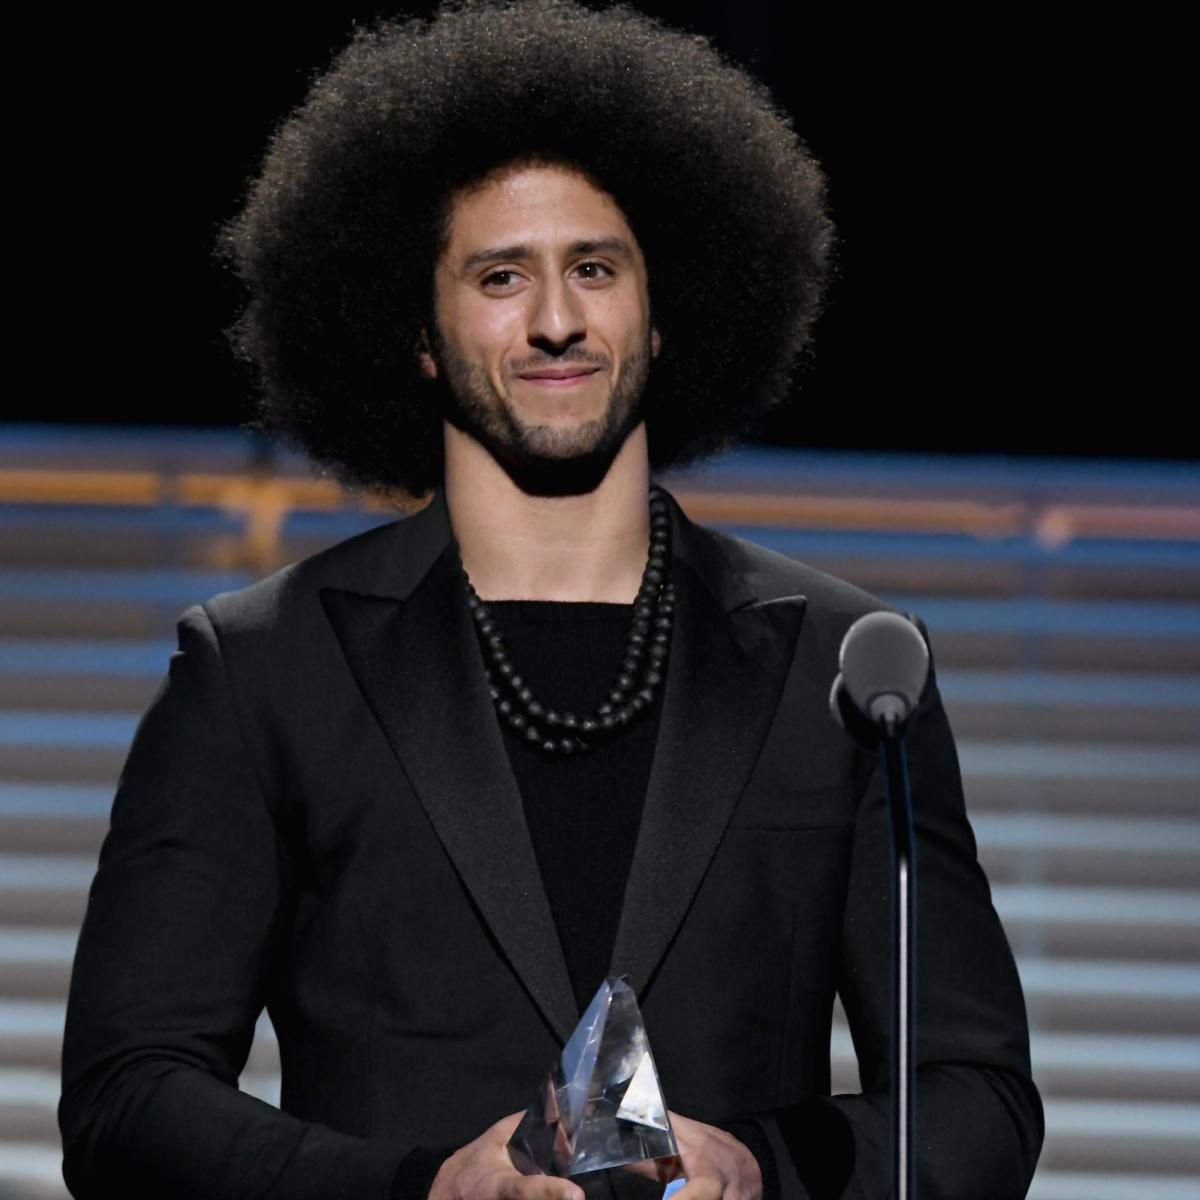 Colin Kaepernick Named Face of Nike's 30th Anniversary of 'Just Do It' Campaign